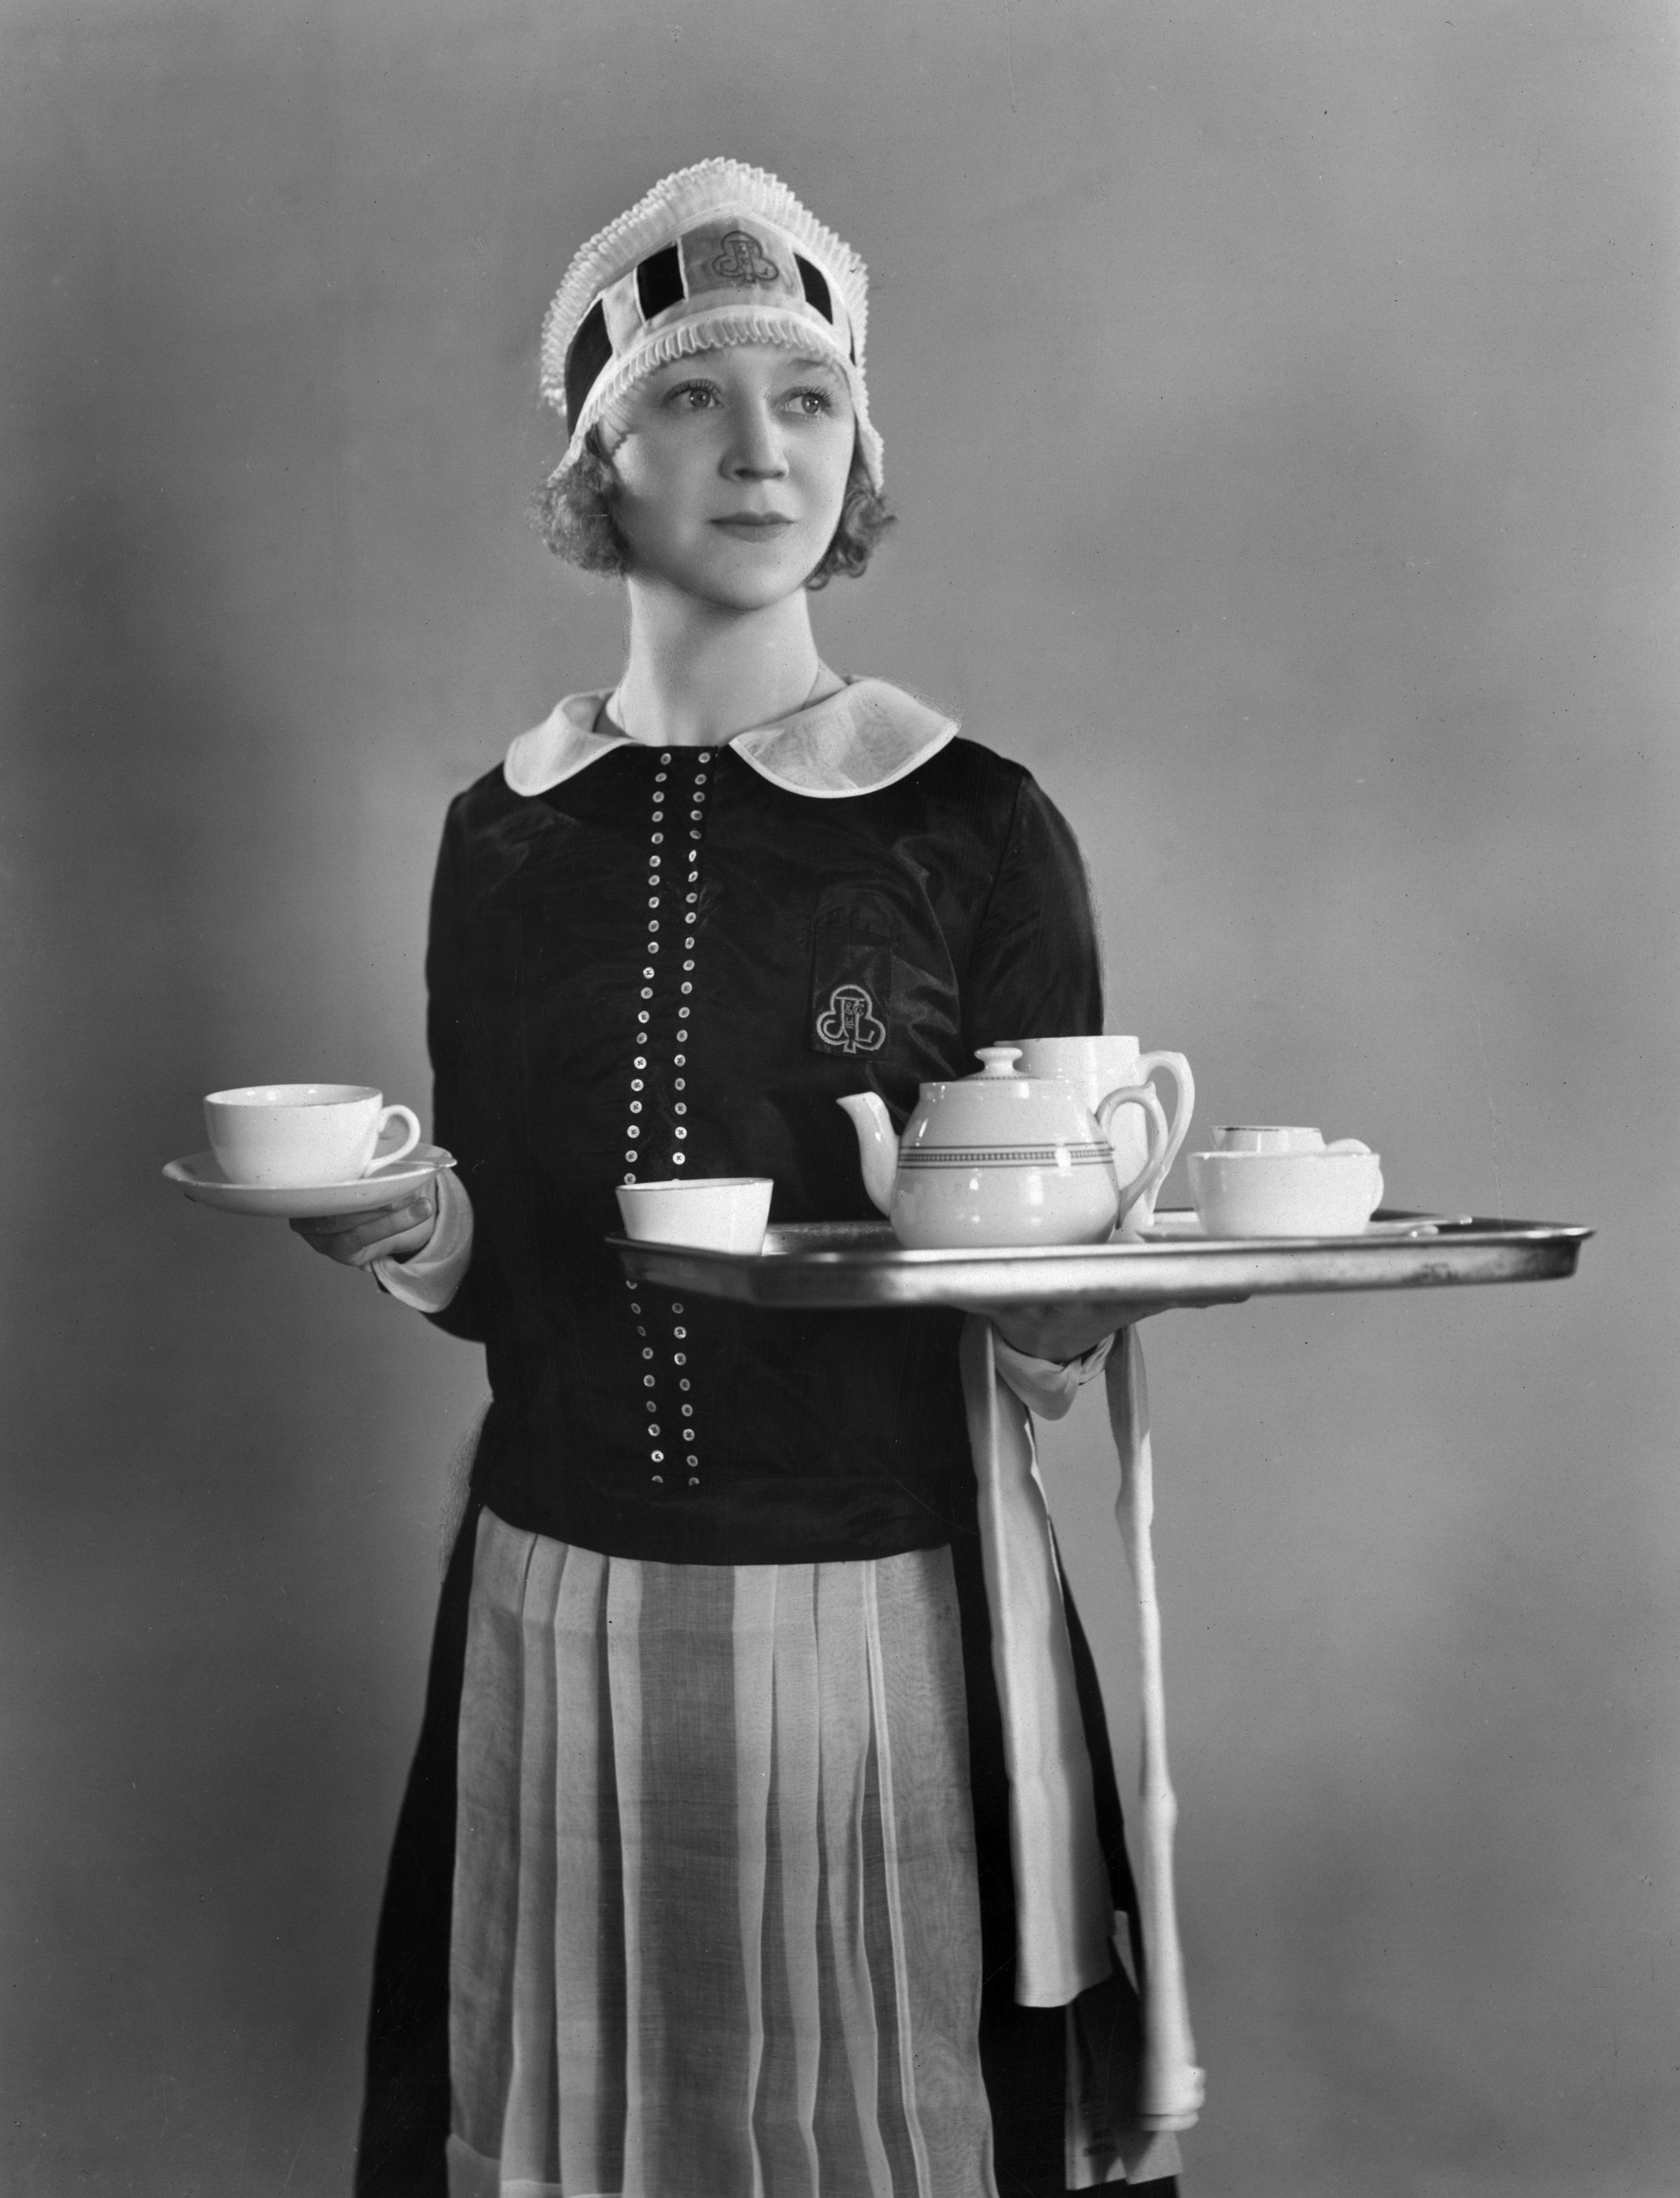 30th August 1930:  British revue comedienne Binnie Hale (1899 - 1984), formerly Beatrice Mary Hale-Monro dressed as a waitress for her part in the Julian Wylie production 'Nippy', showing at the Prince Edward Theatre in London.  (Photo by Sasha/Getty Images)